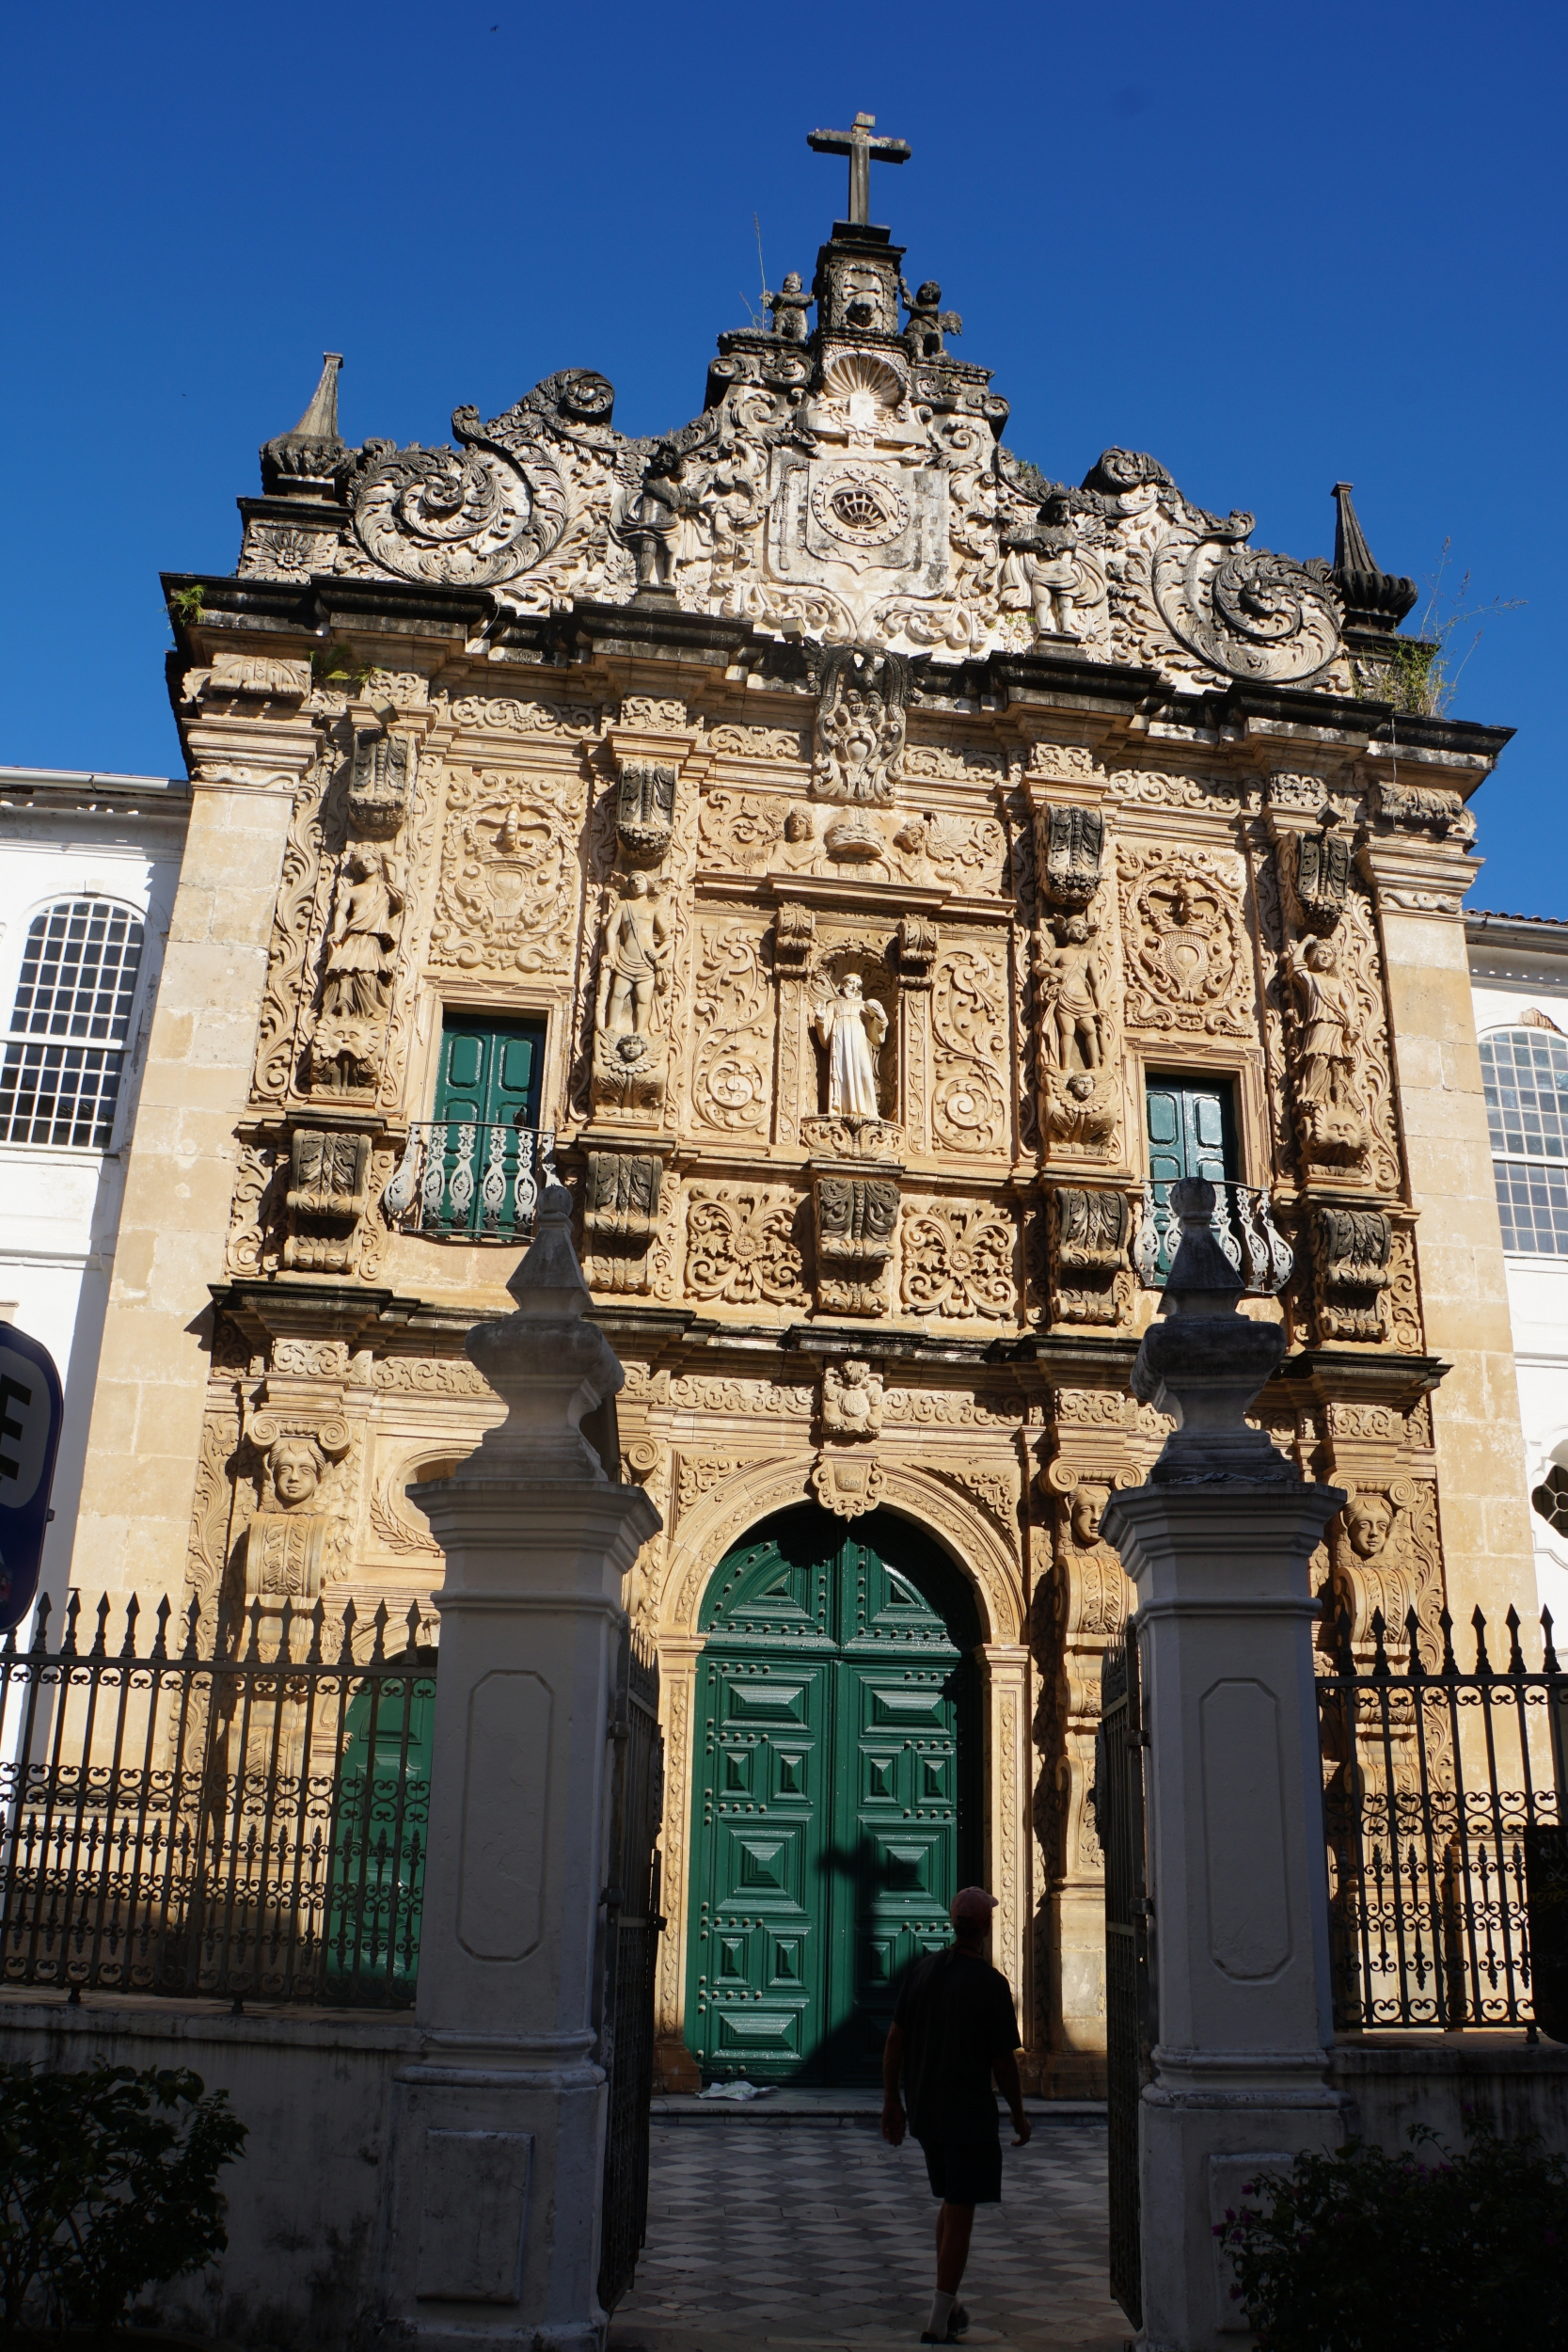 25. Salvador has a different church for every day of the year